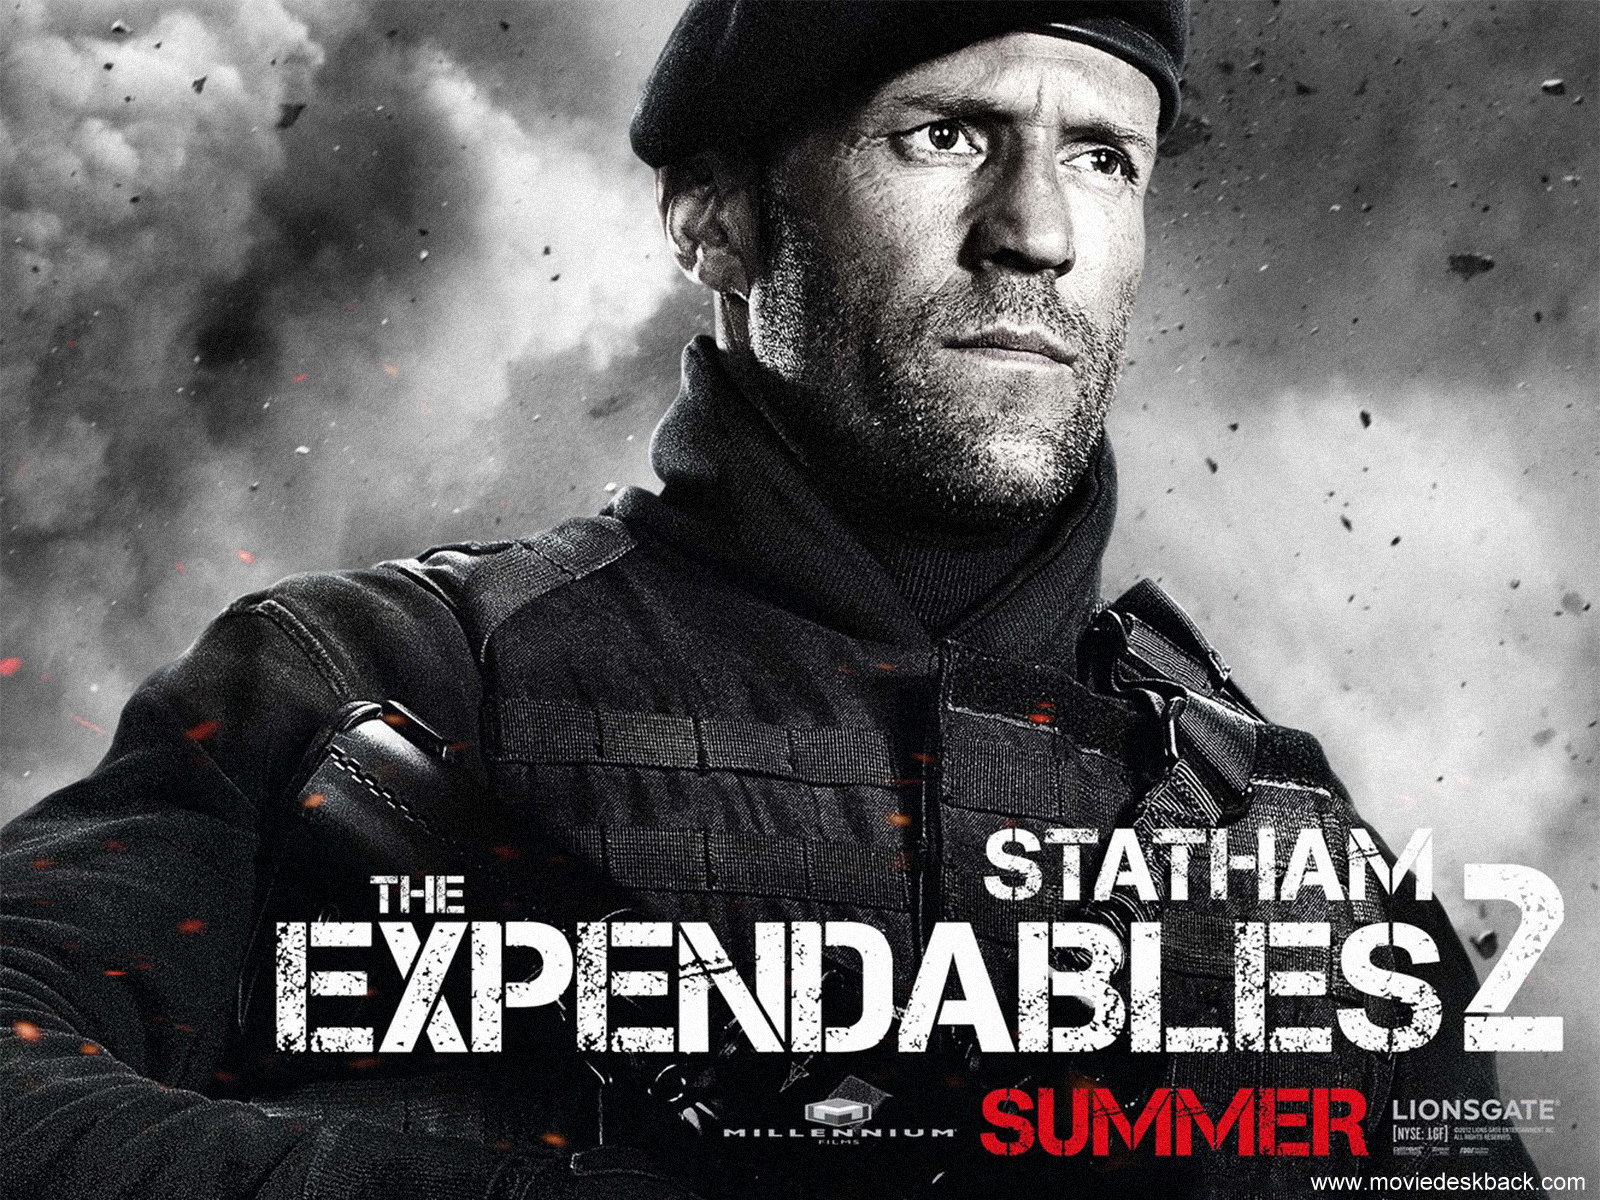 Expendables Wallpaper Iphone Jason Statham Hd Expendables 2 Desktop Image Hd Wallpapers